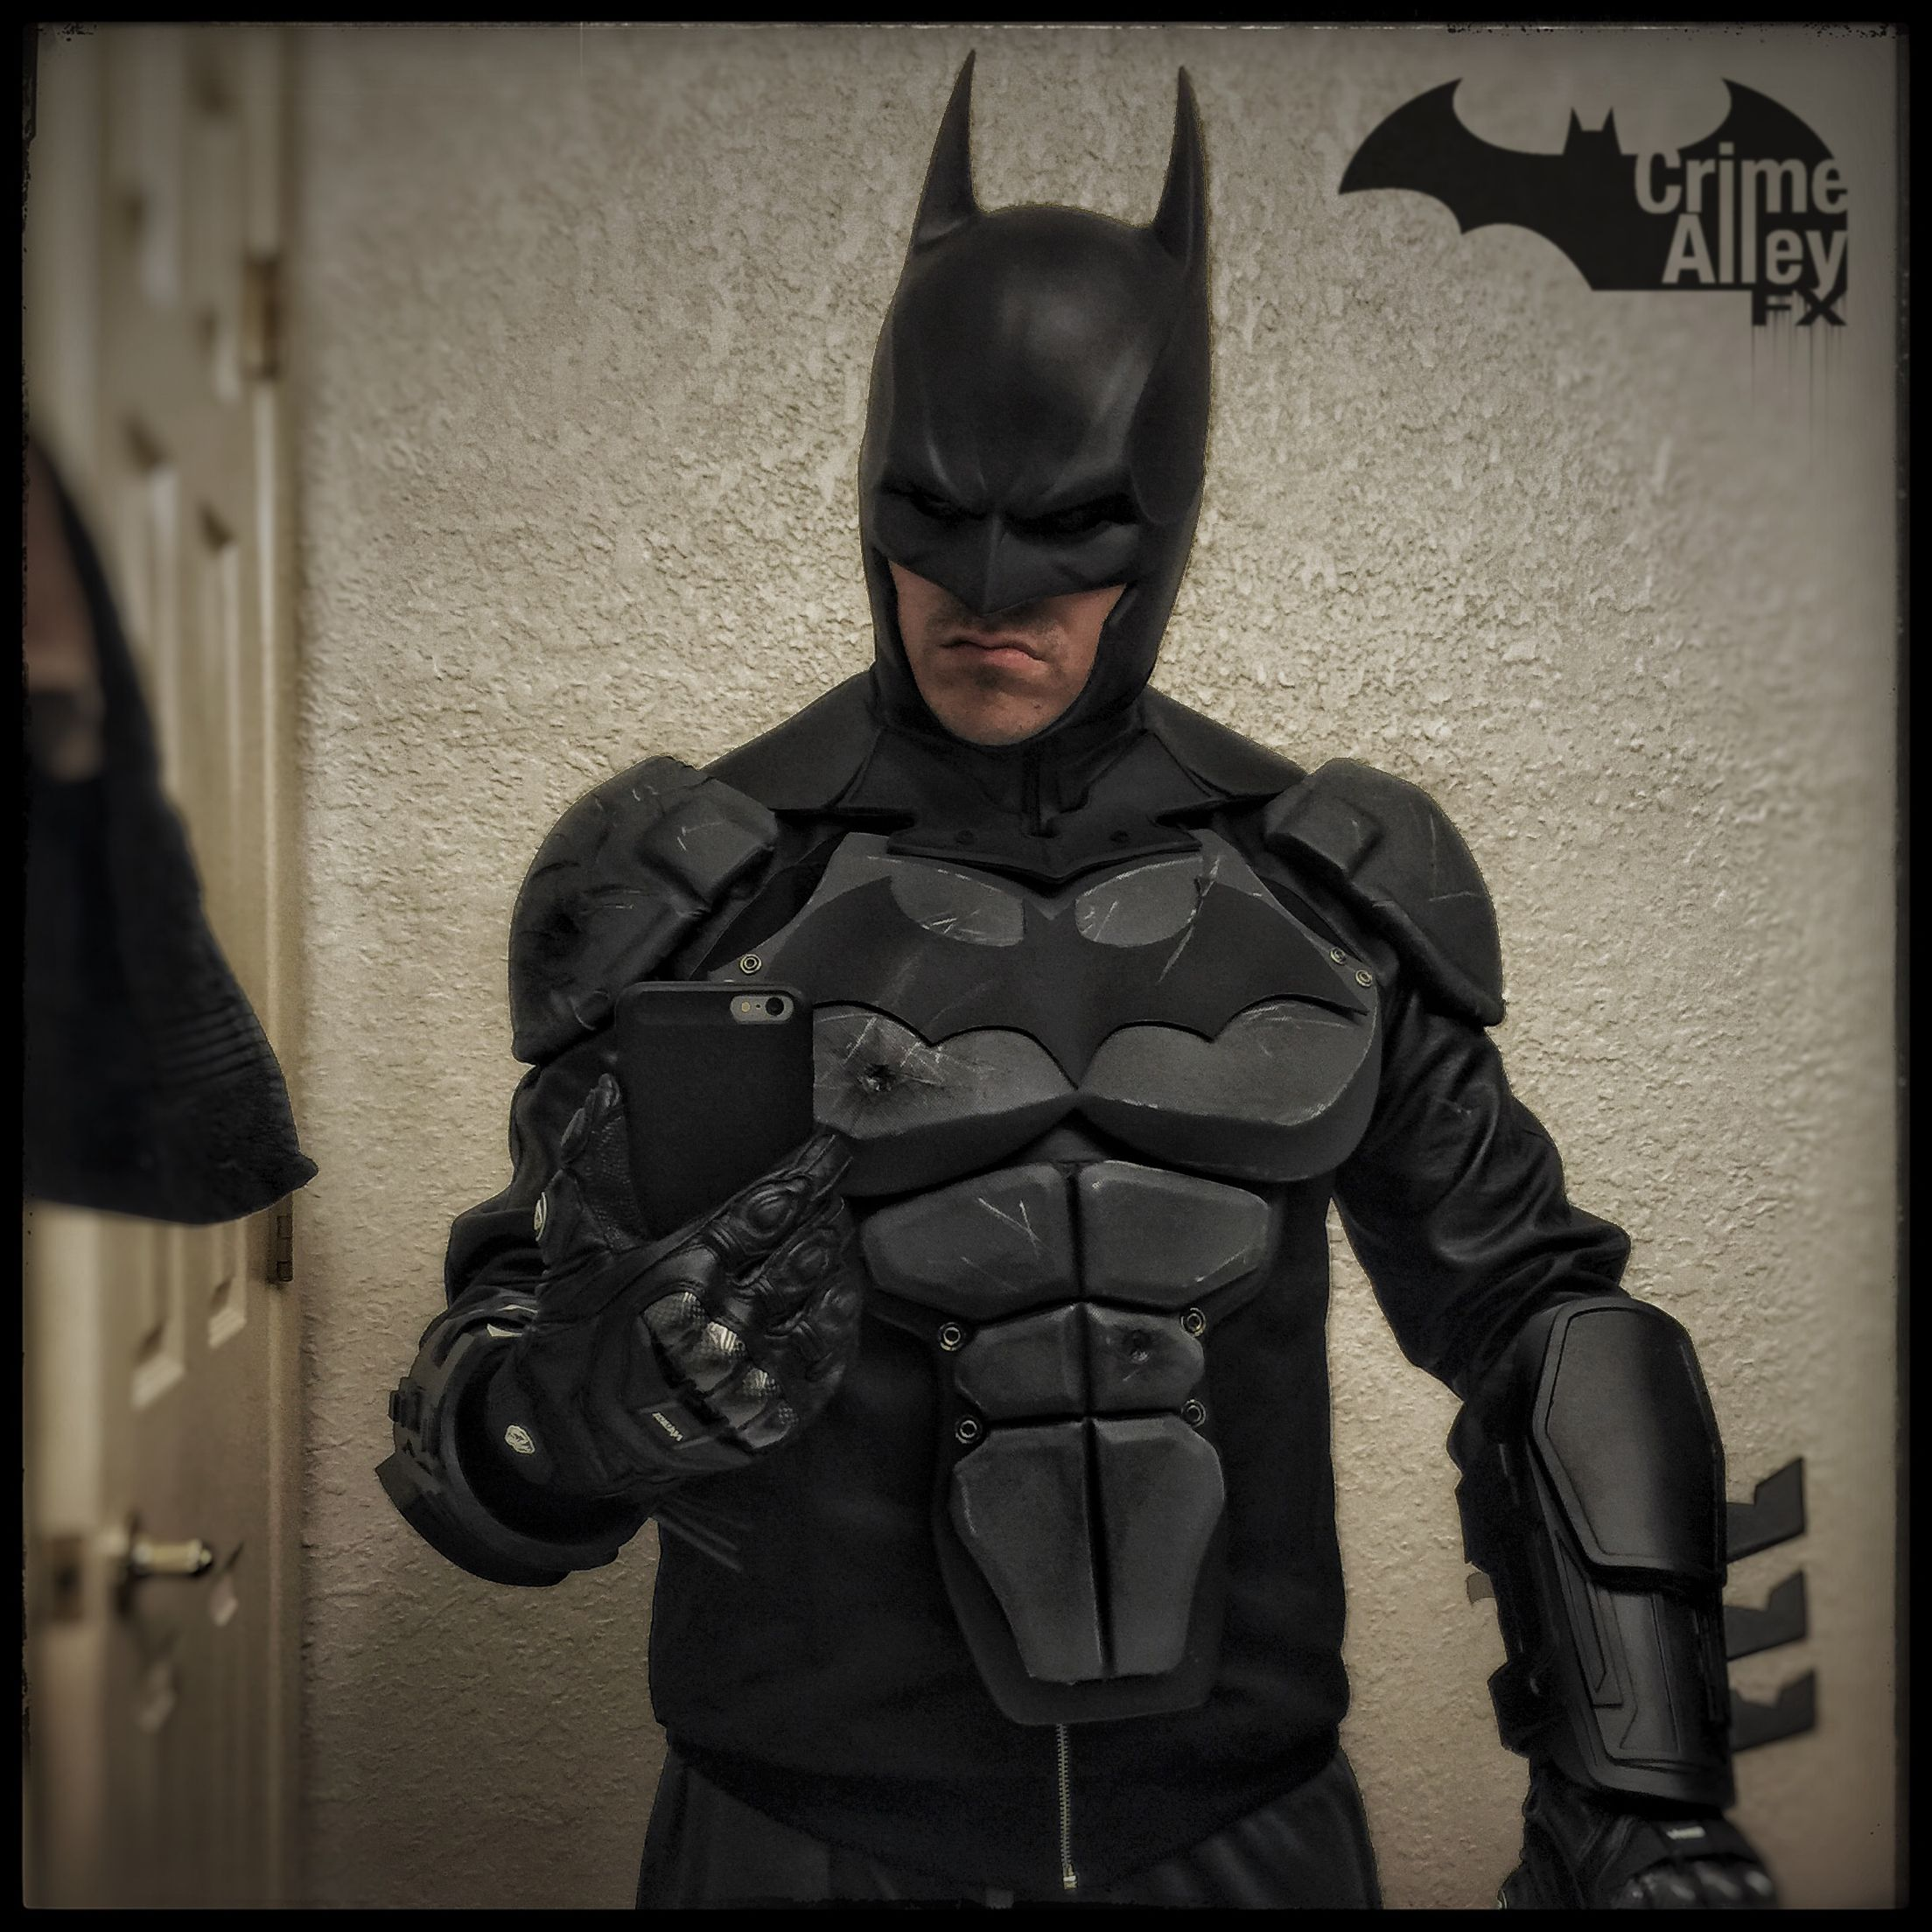 Batman Arkham Knight Batcave: Progress On My Batman Arkham Origins Costume. Shoulders